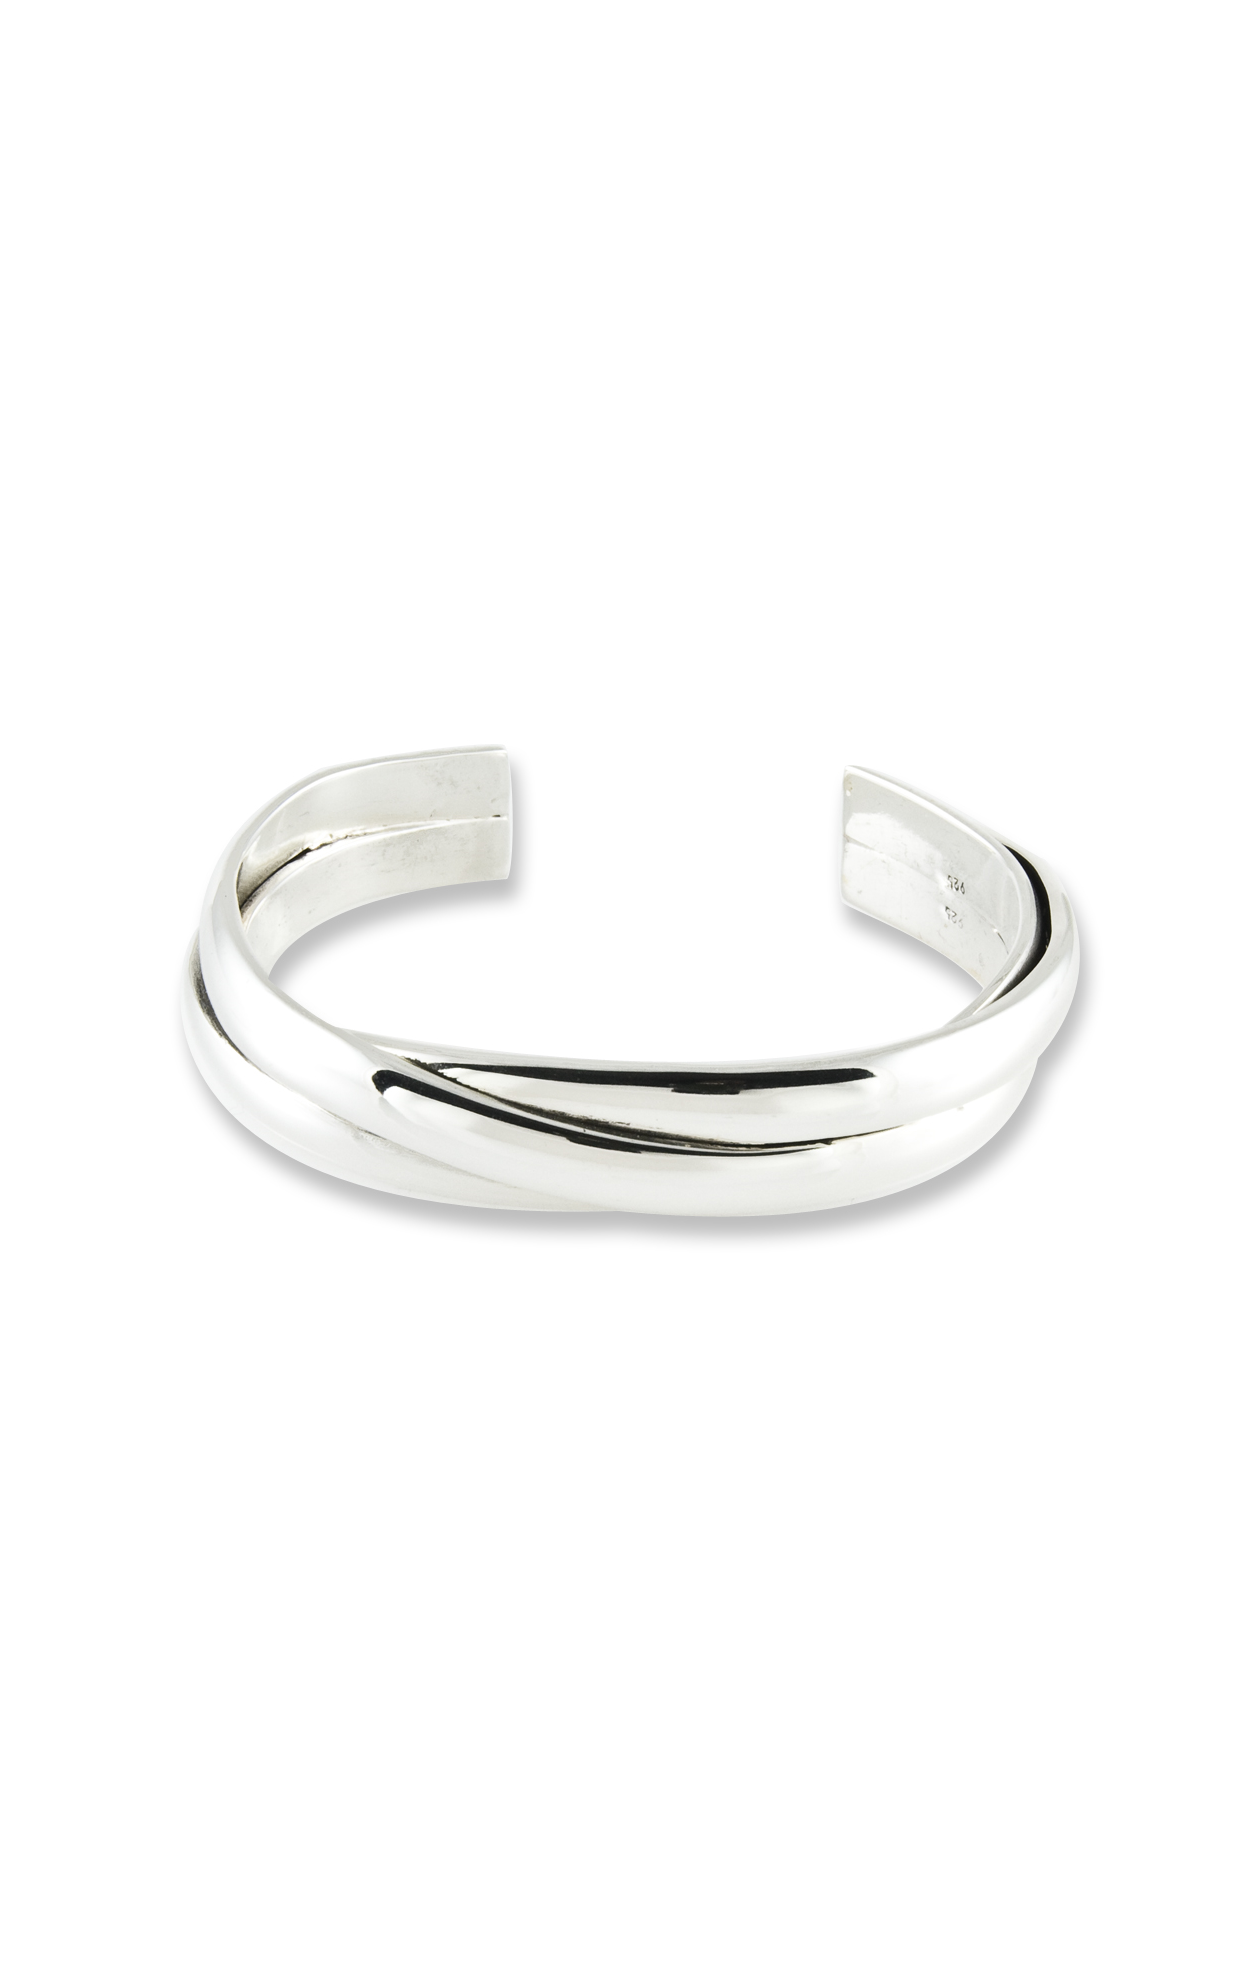 Zina Contemporary Bracelet A604 product image